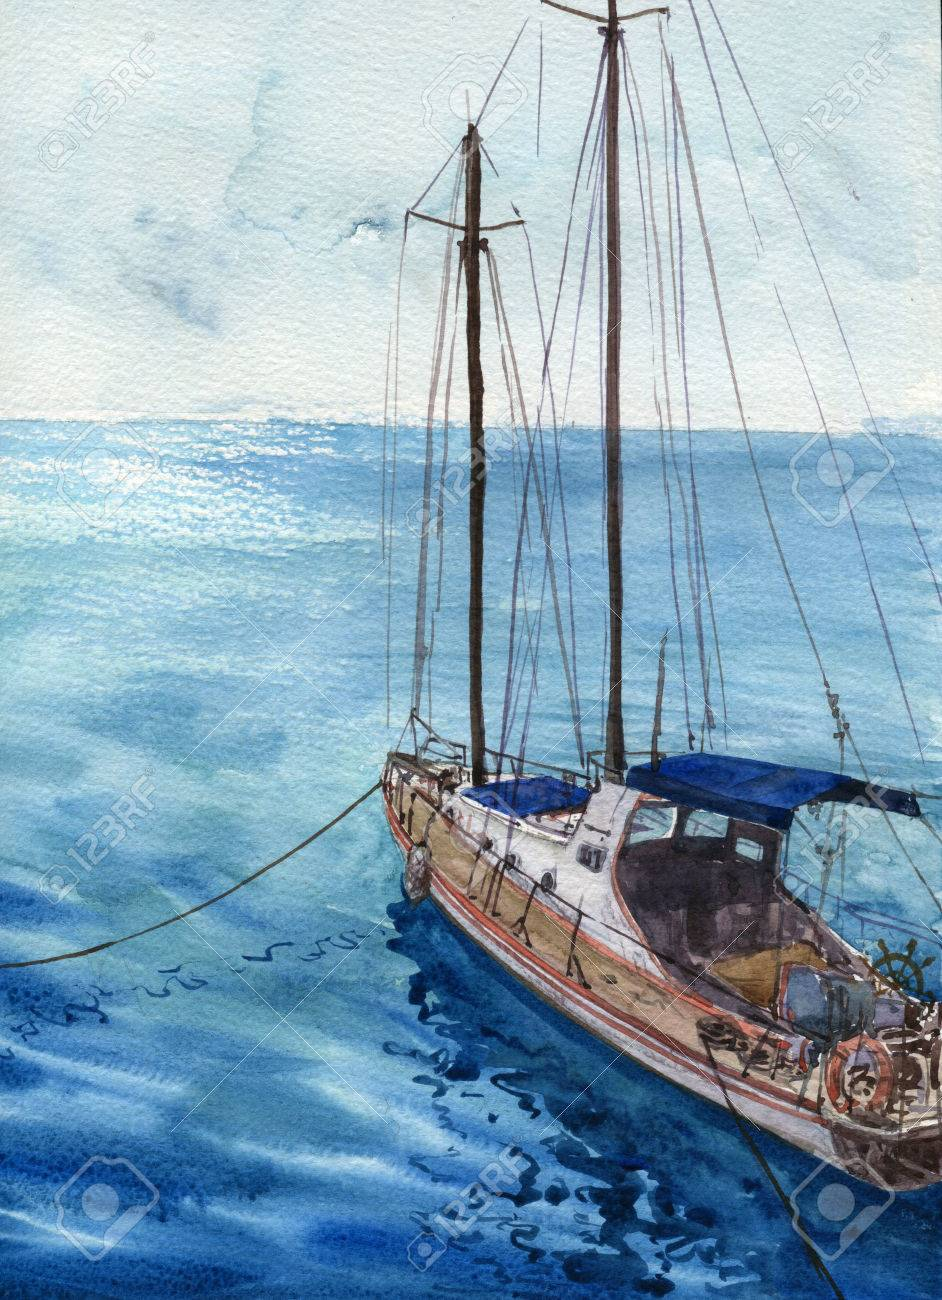 703a534bd watercolor sea landscape with boats, blue waves and reflection in water,  hand drawn illustration